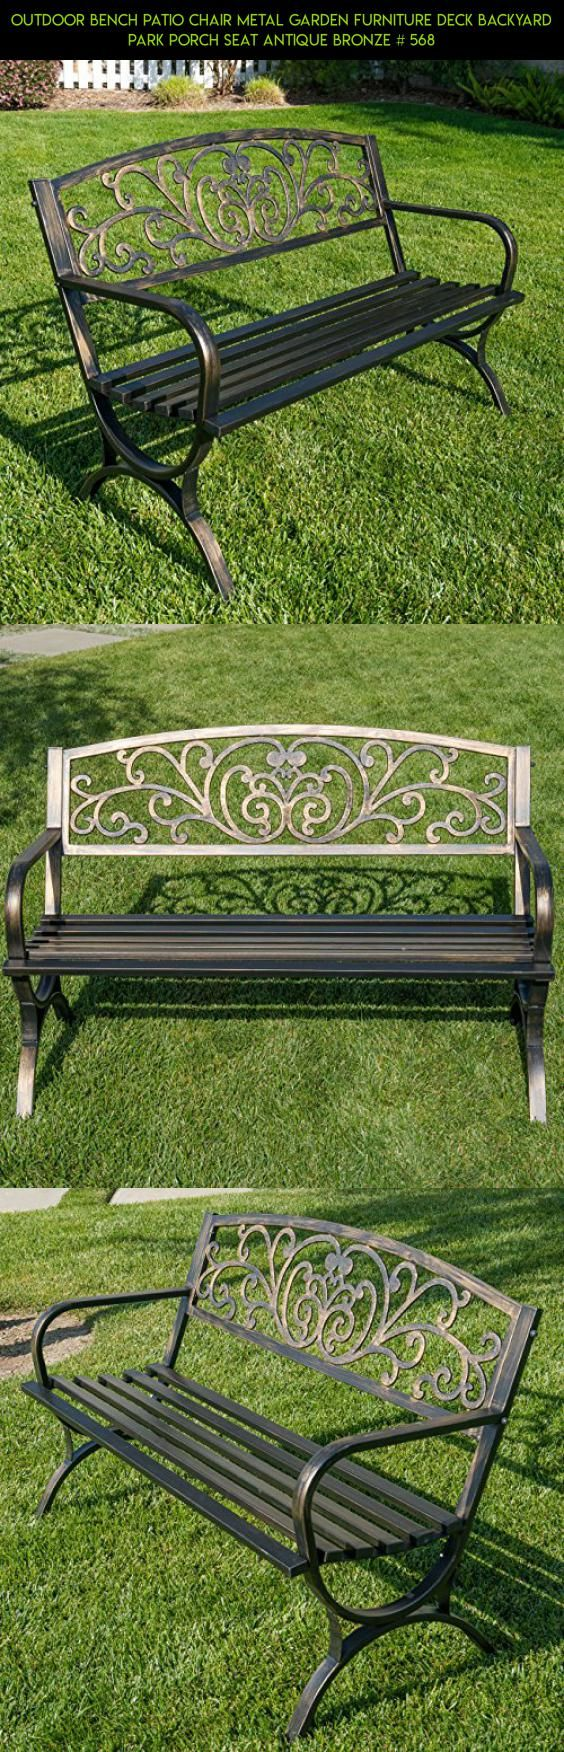 How to make seat cushions for dining chairs moreover white resin - Outdoor Bench Patio Chair Metal Garden Furniture Deck Backyard Park Porch Seat Antique Bronze 568